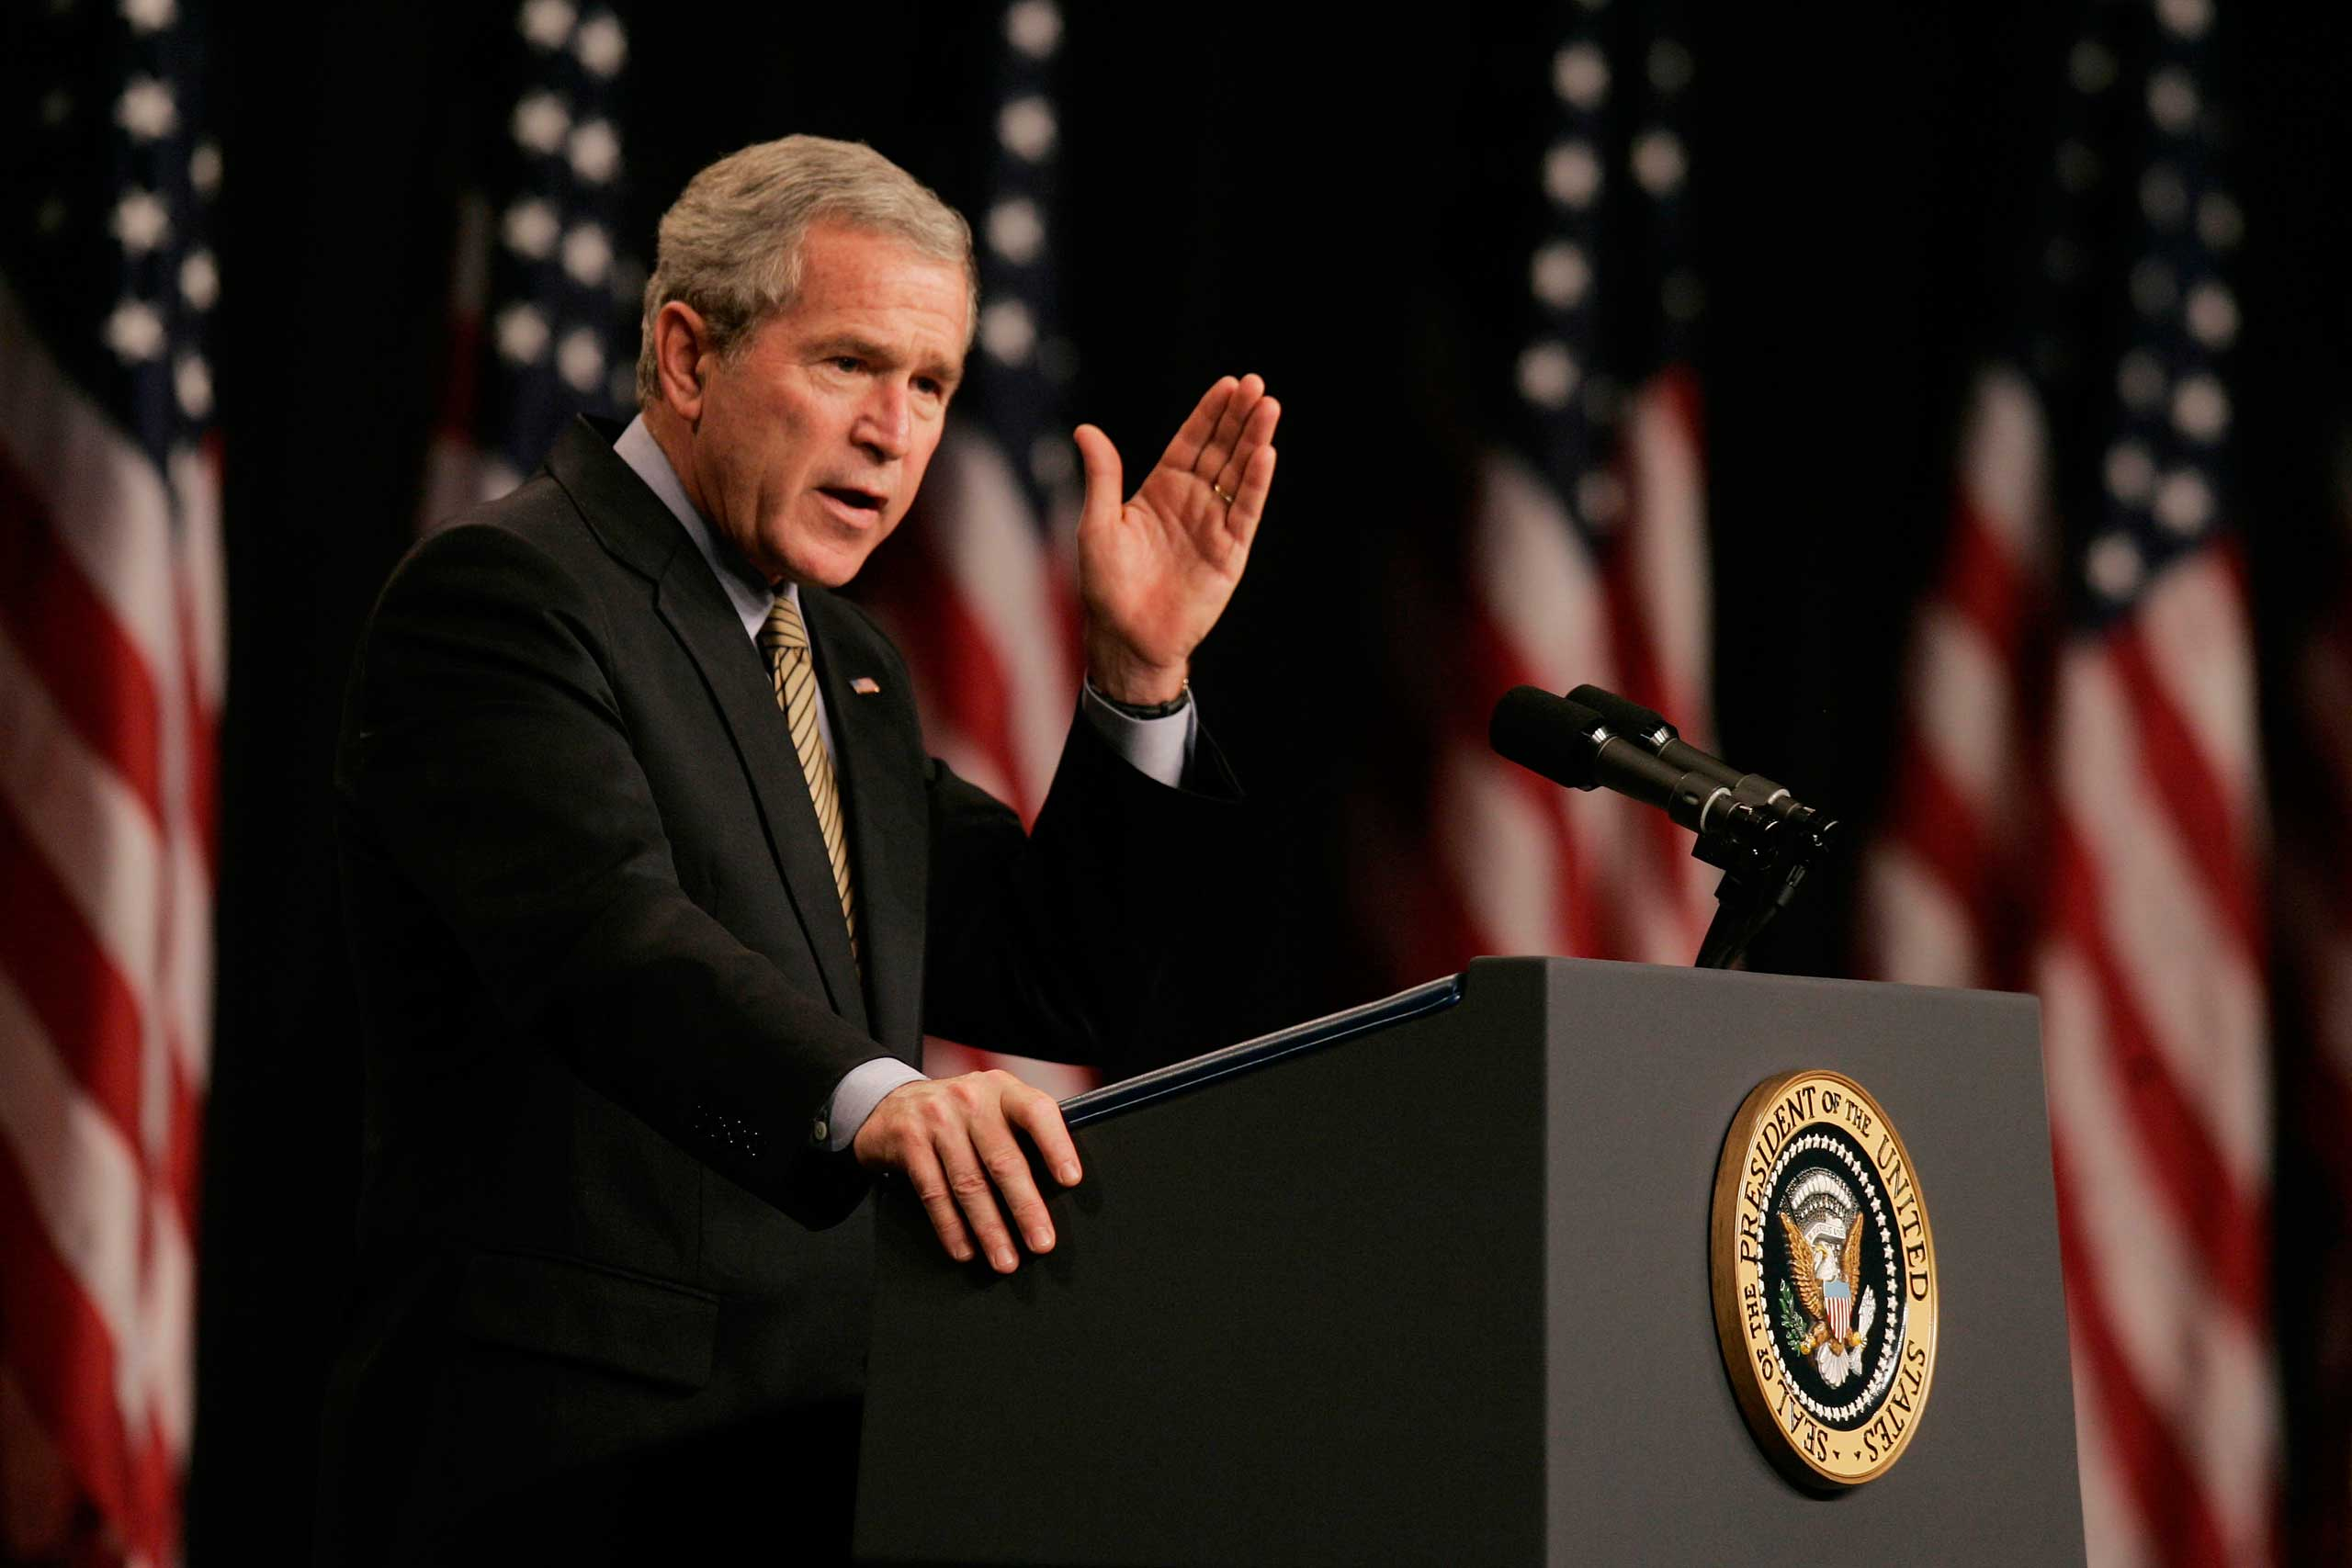 President Bush speaks about the war on terror at a hotel in Washington on Sept. 29, 2006.